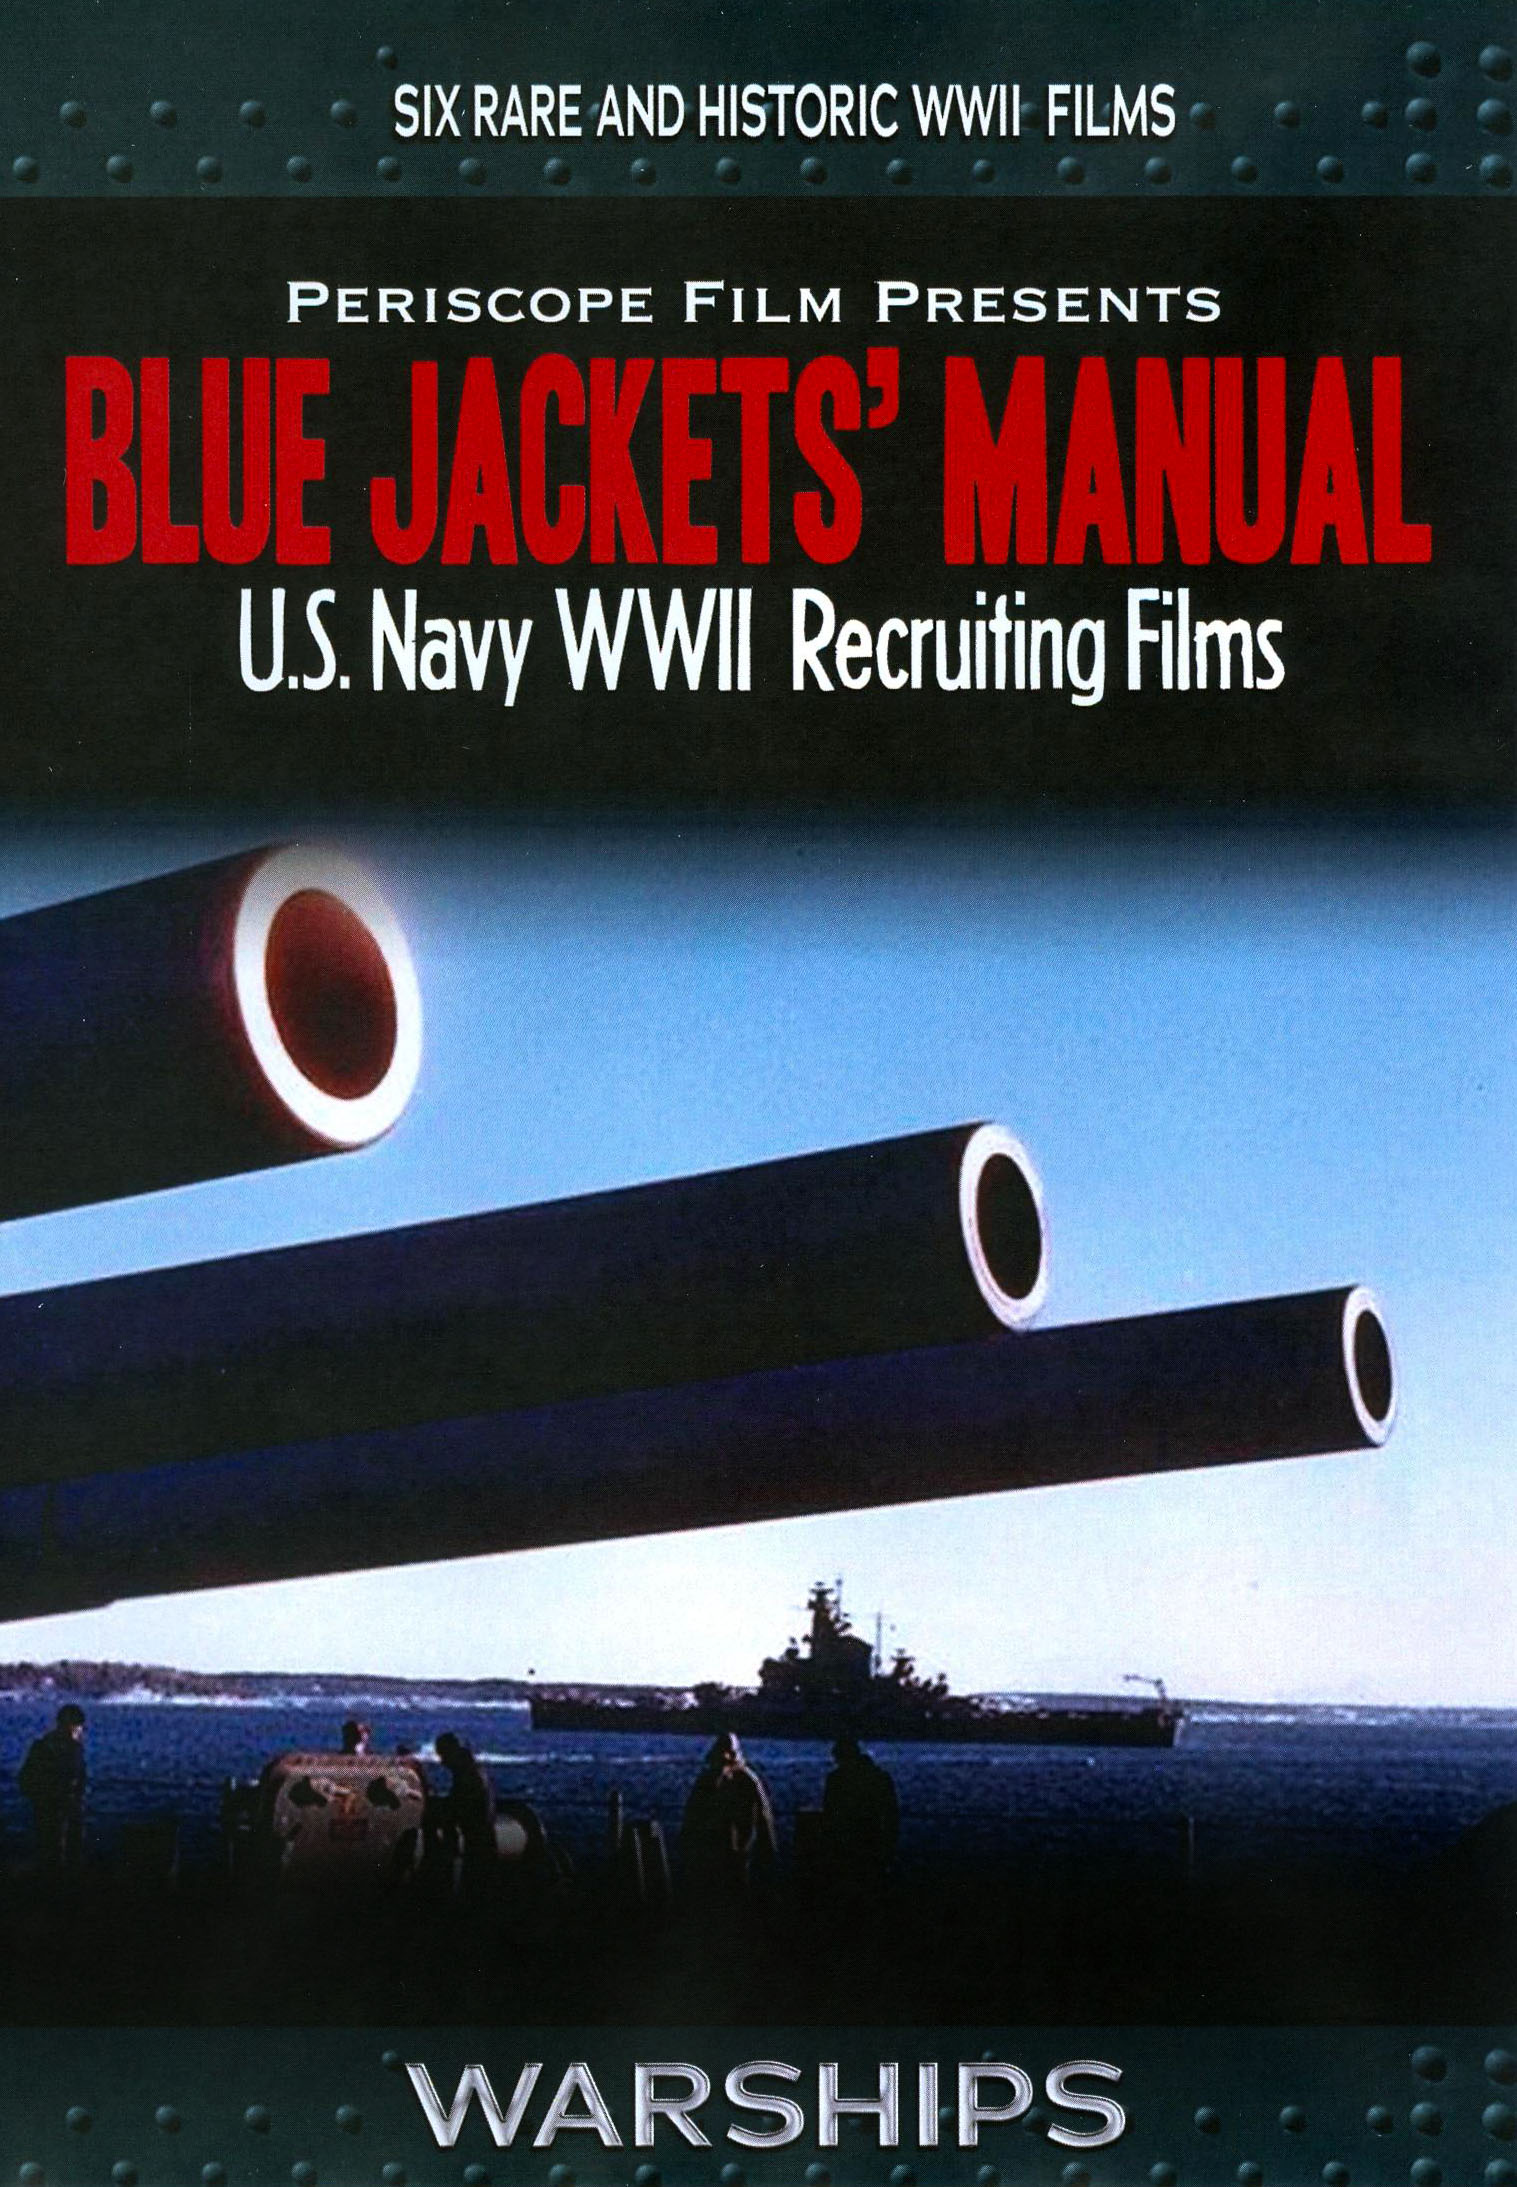 Blue Jackets' Manual: U.S. Navy WWII Recruiting